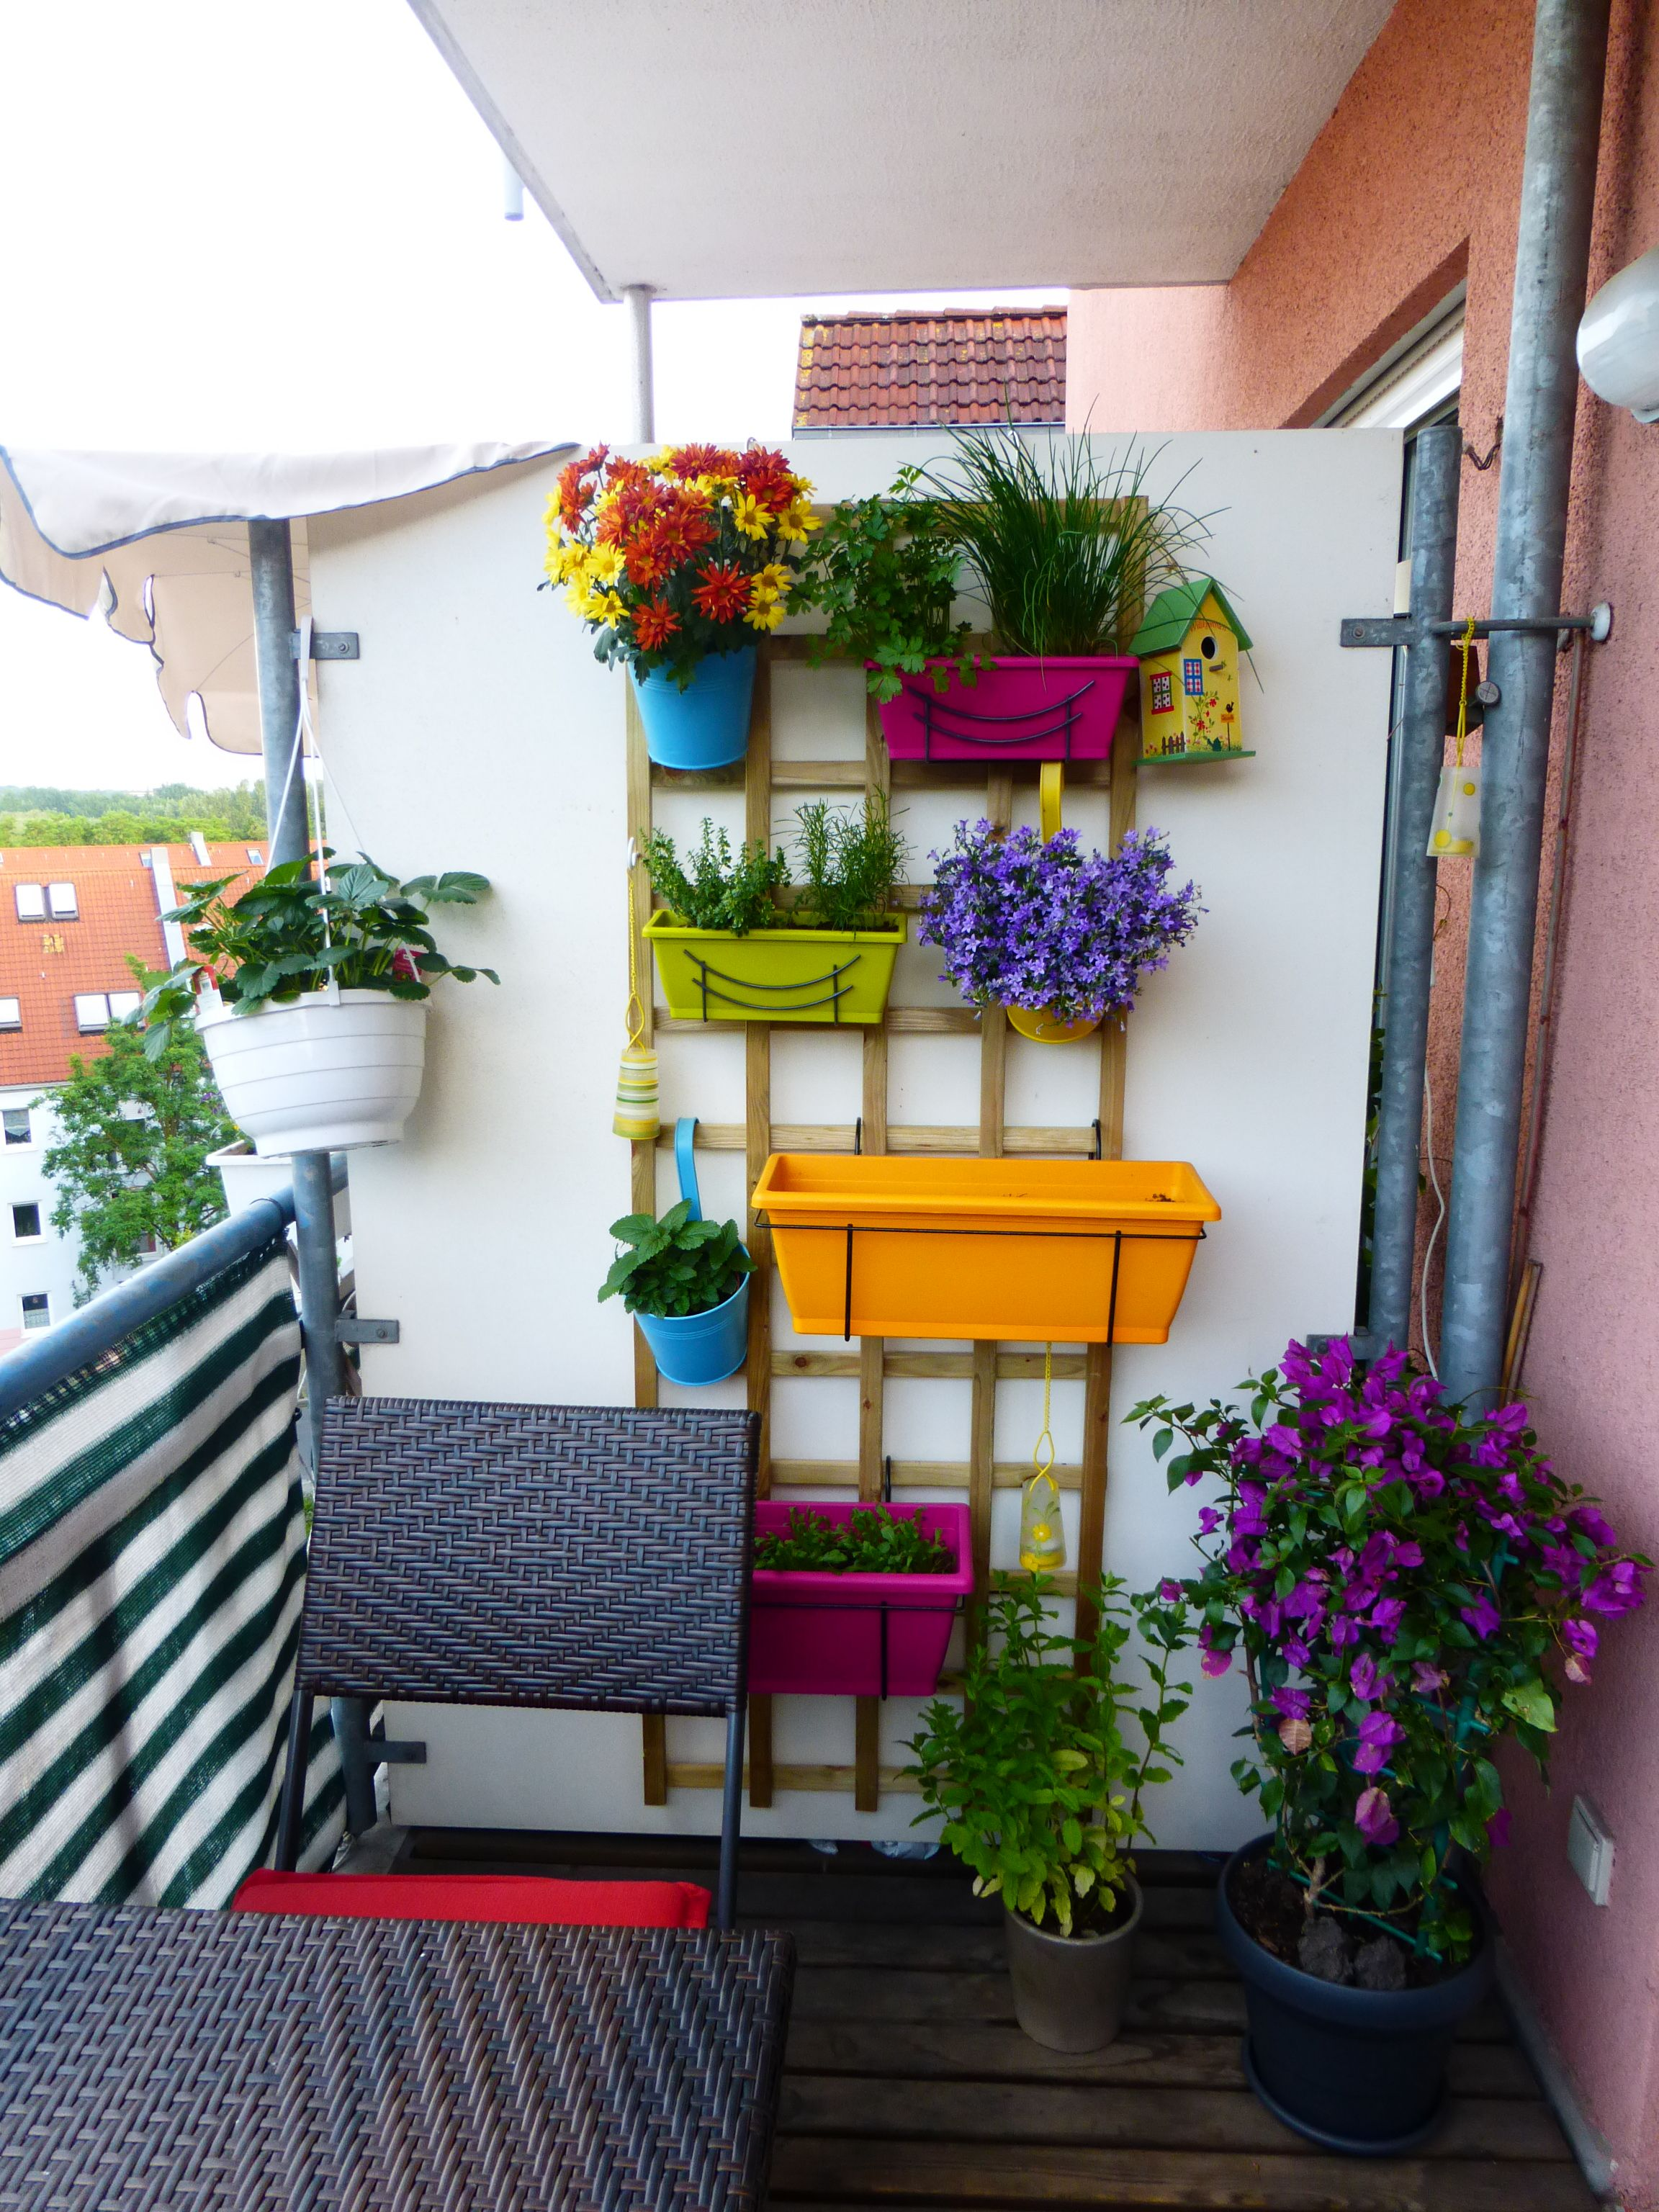 Garden Ideas For Small Balcony, Garden Ideas Diy Cheap, Balcony Flower Box,  Patio